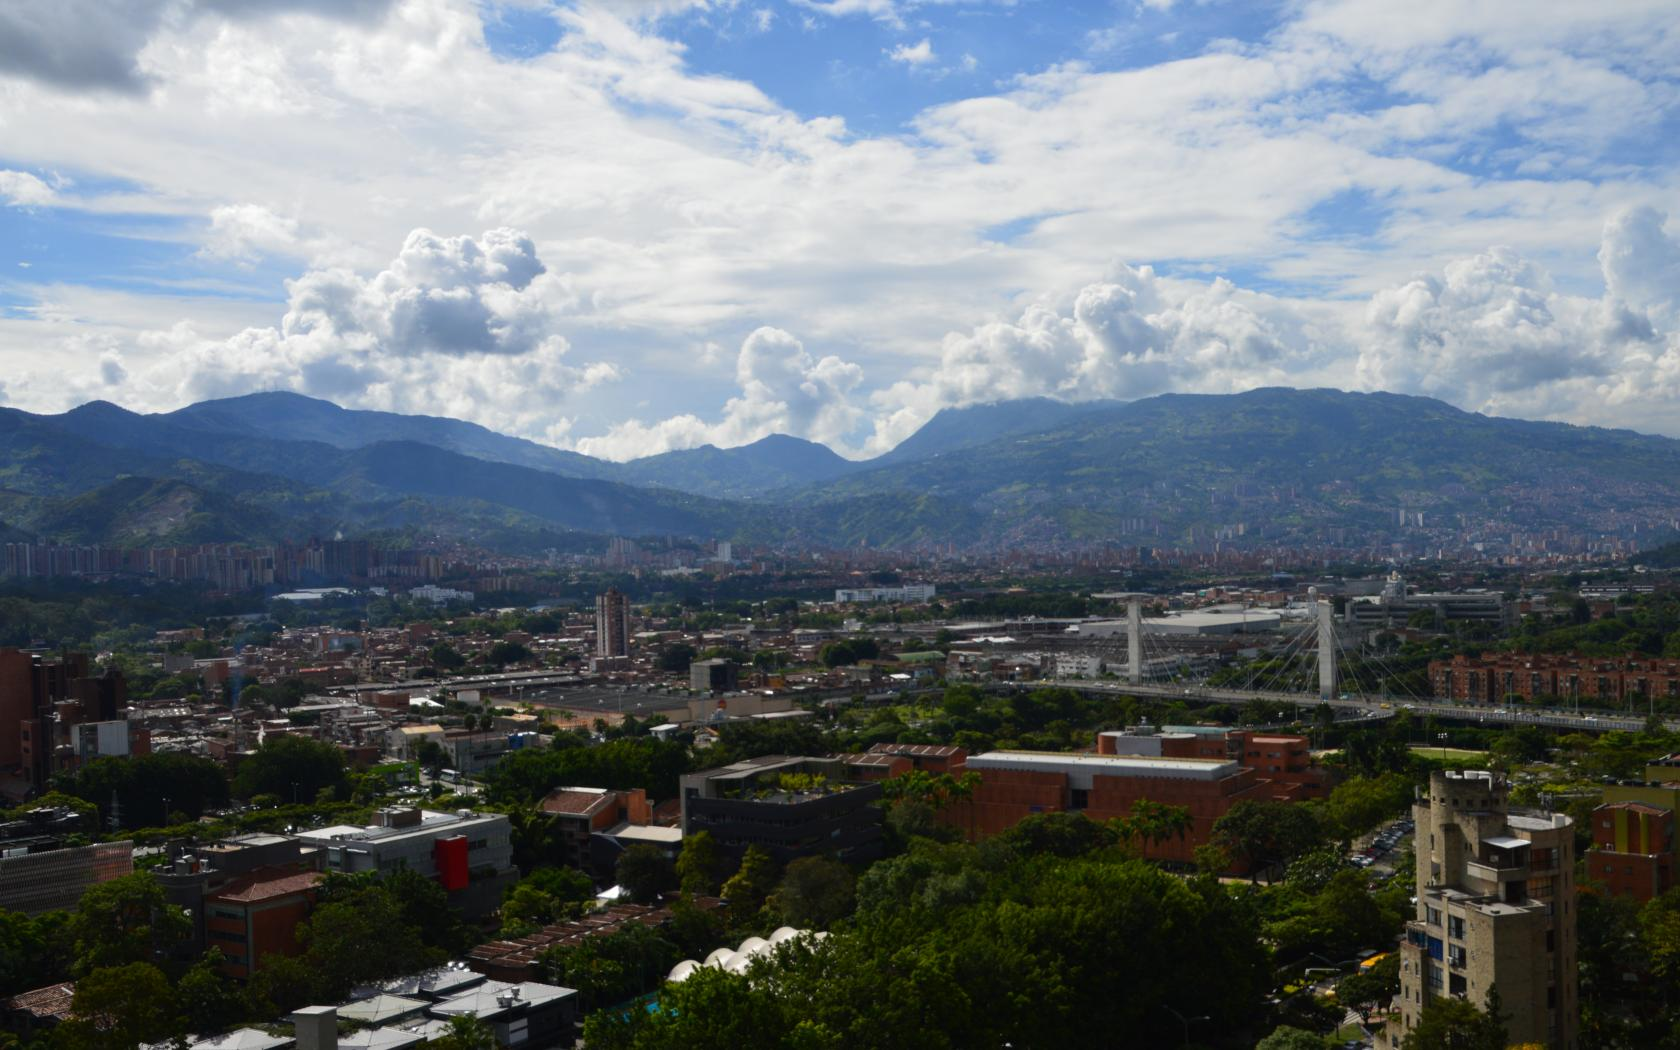 The view of Medellin and surrounding mountains from our balcony.